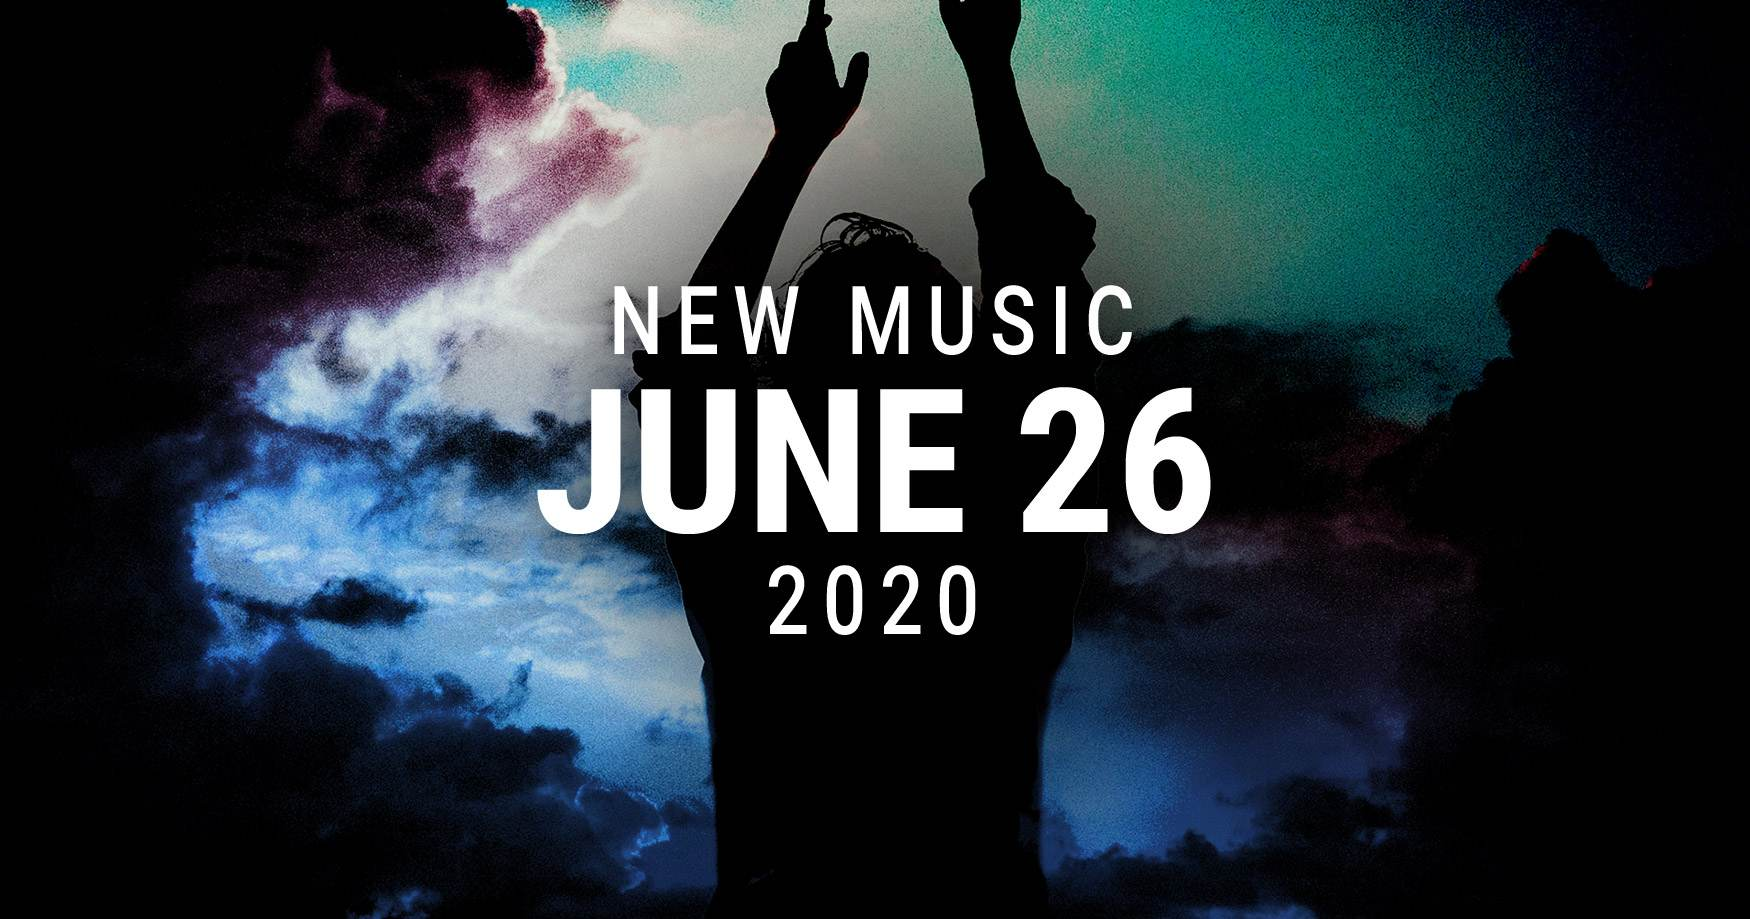 New Music June 26 2020